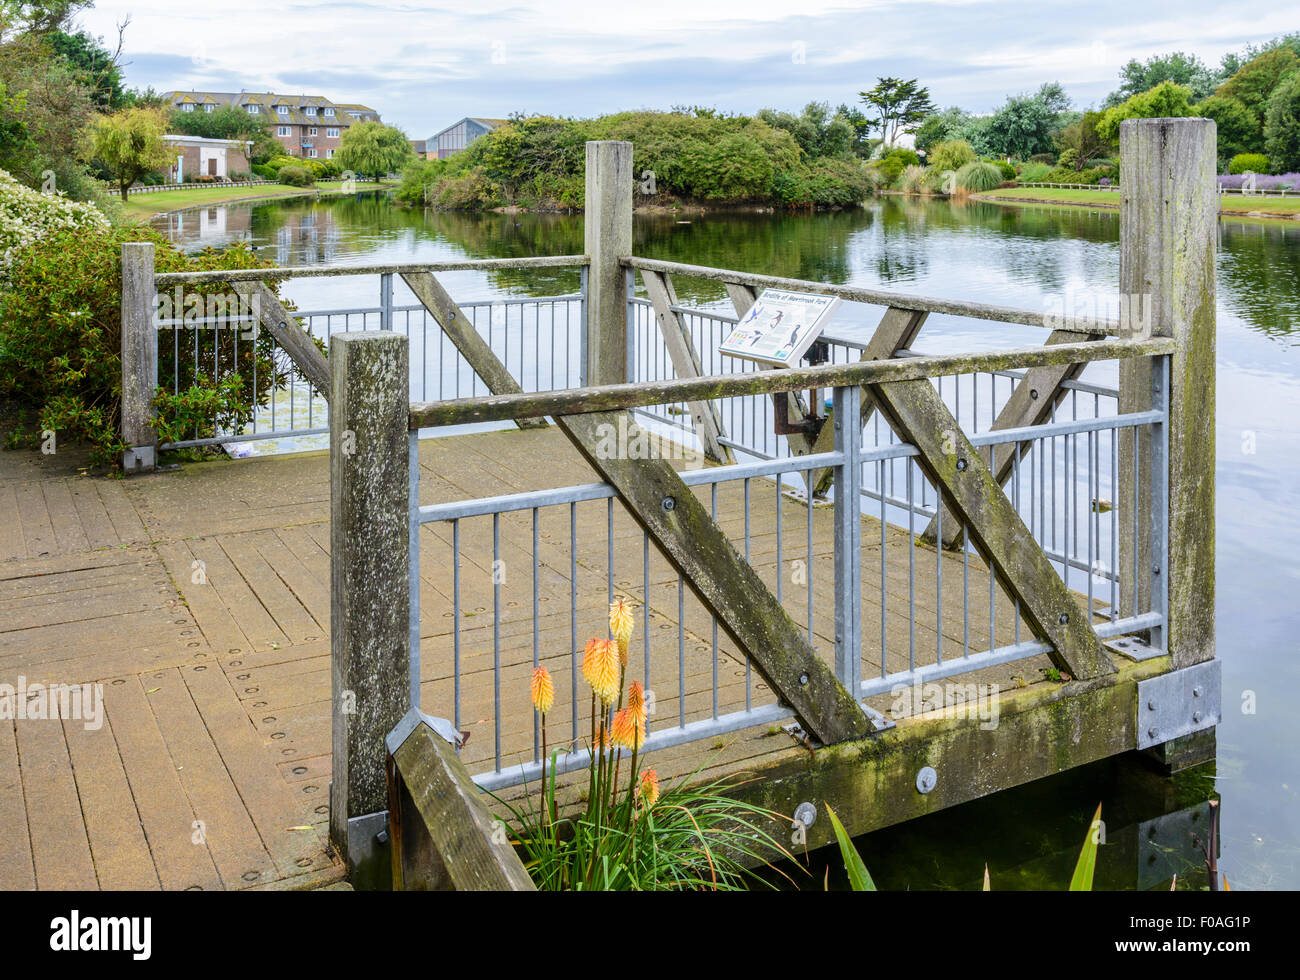 La plate-forme d'observation en bois sur le lac à Mewsbrook Park, Littlehampton, West Sussex, Angleterre. Photo Stock